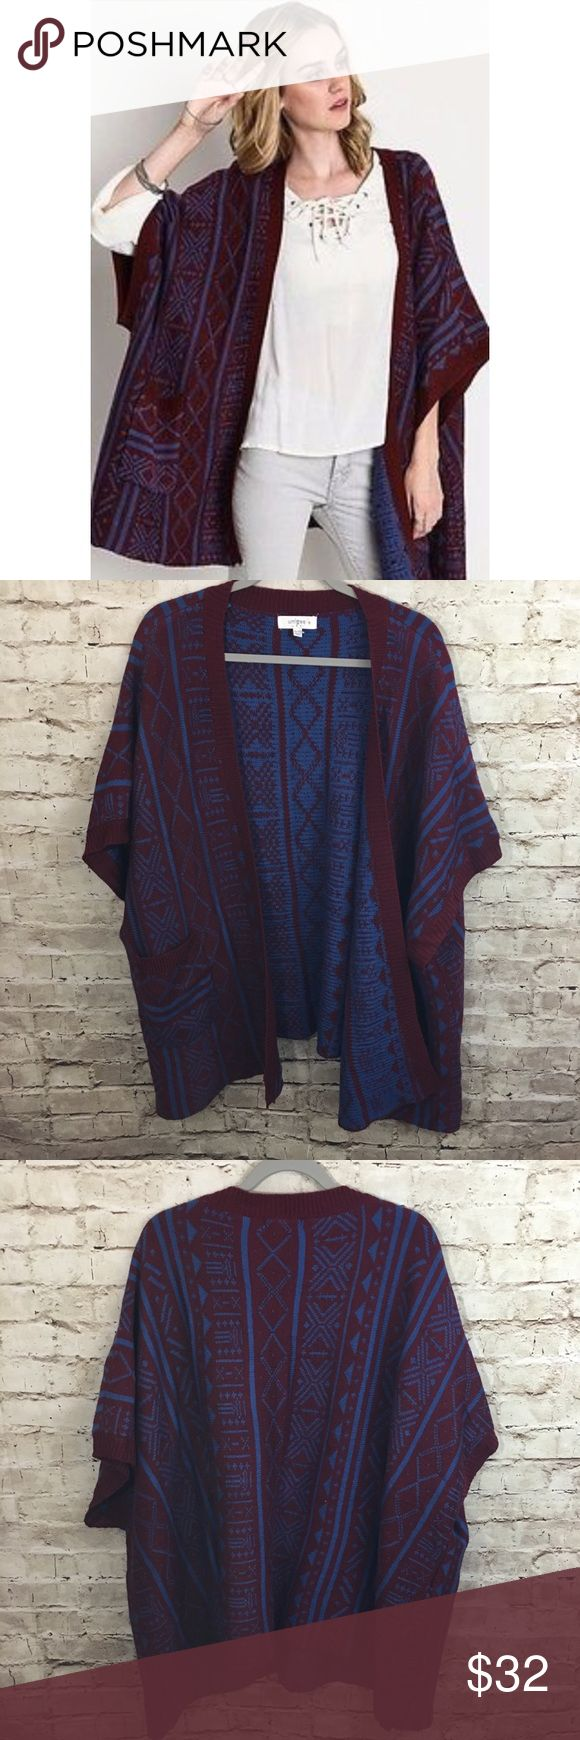 """Umgee Western Tribal Print Open Wrap Cardigan 2XL Instant outfit maker! This Umgee Open Wrap Sweater is in a Western Tribal Print in burgundy and blue. Size 2XL. Thick sweater hits at the hip. Includes pockets! Length 28"""". Excellent Condition with no signs of wear! No holes, stains or pilling! Pair with leggings and skinny jeans with boots and go! Umgee Sweaters"""